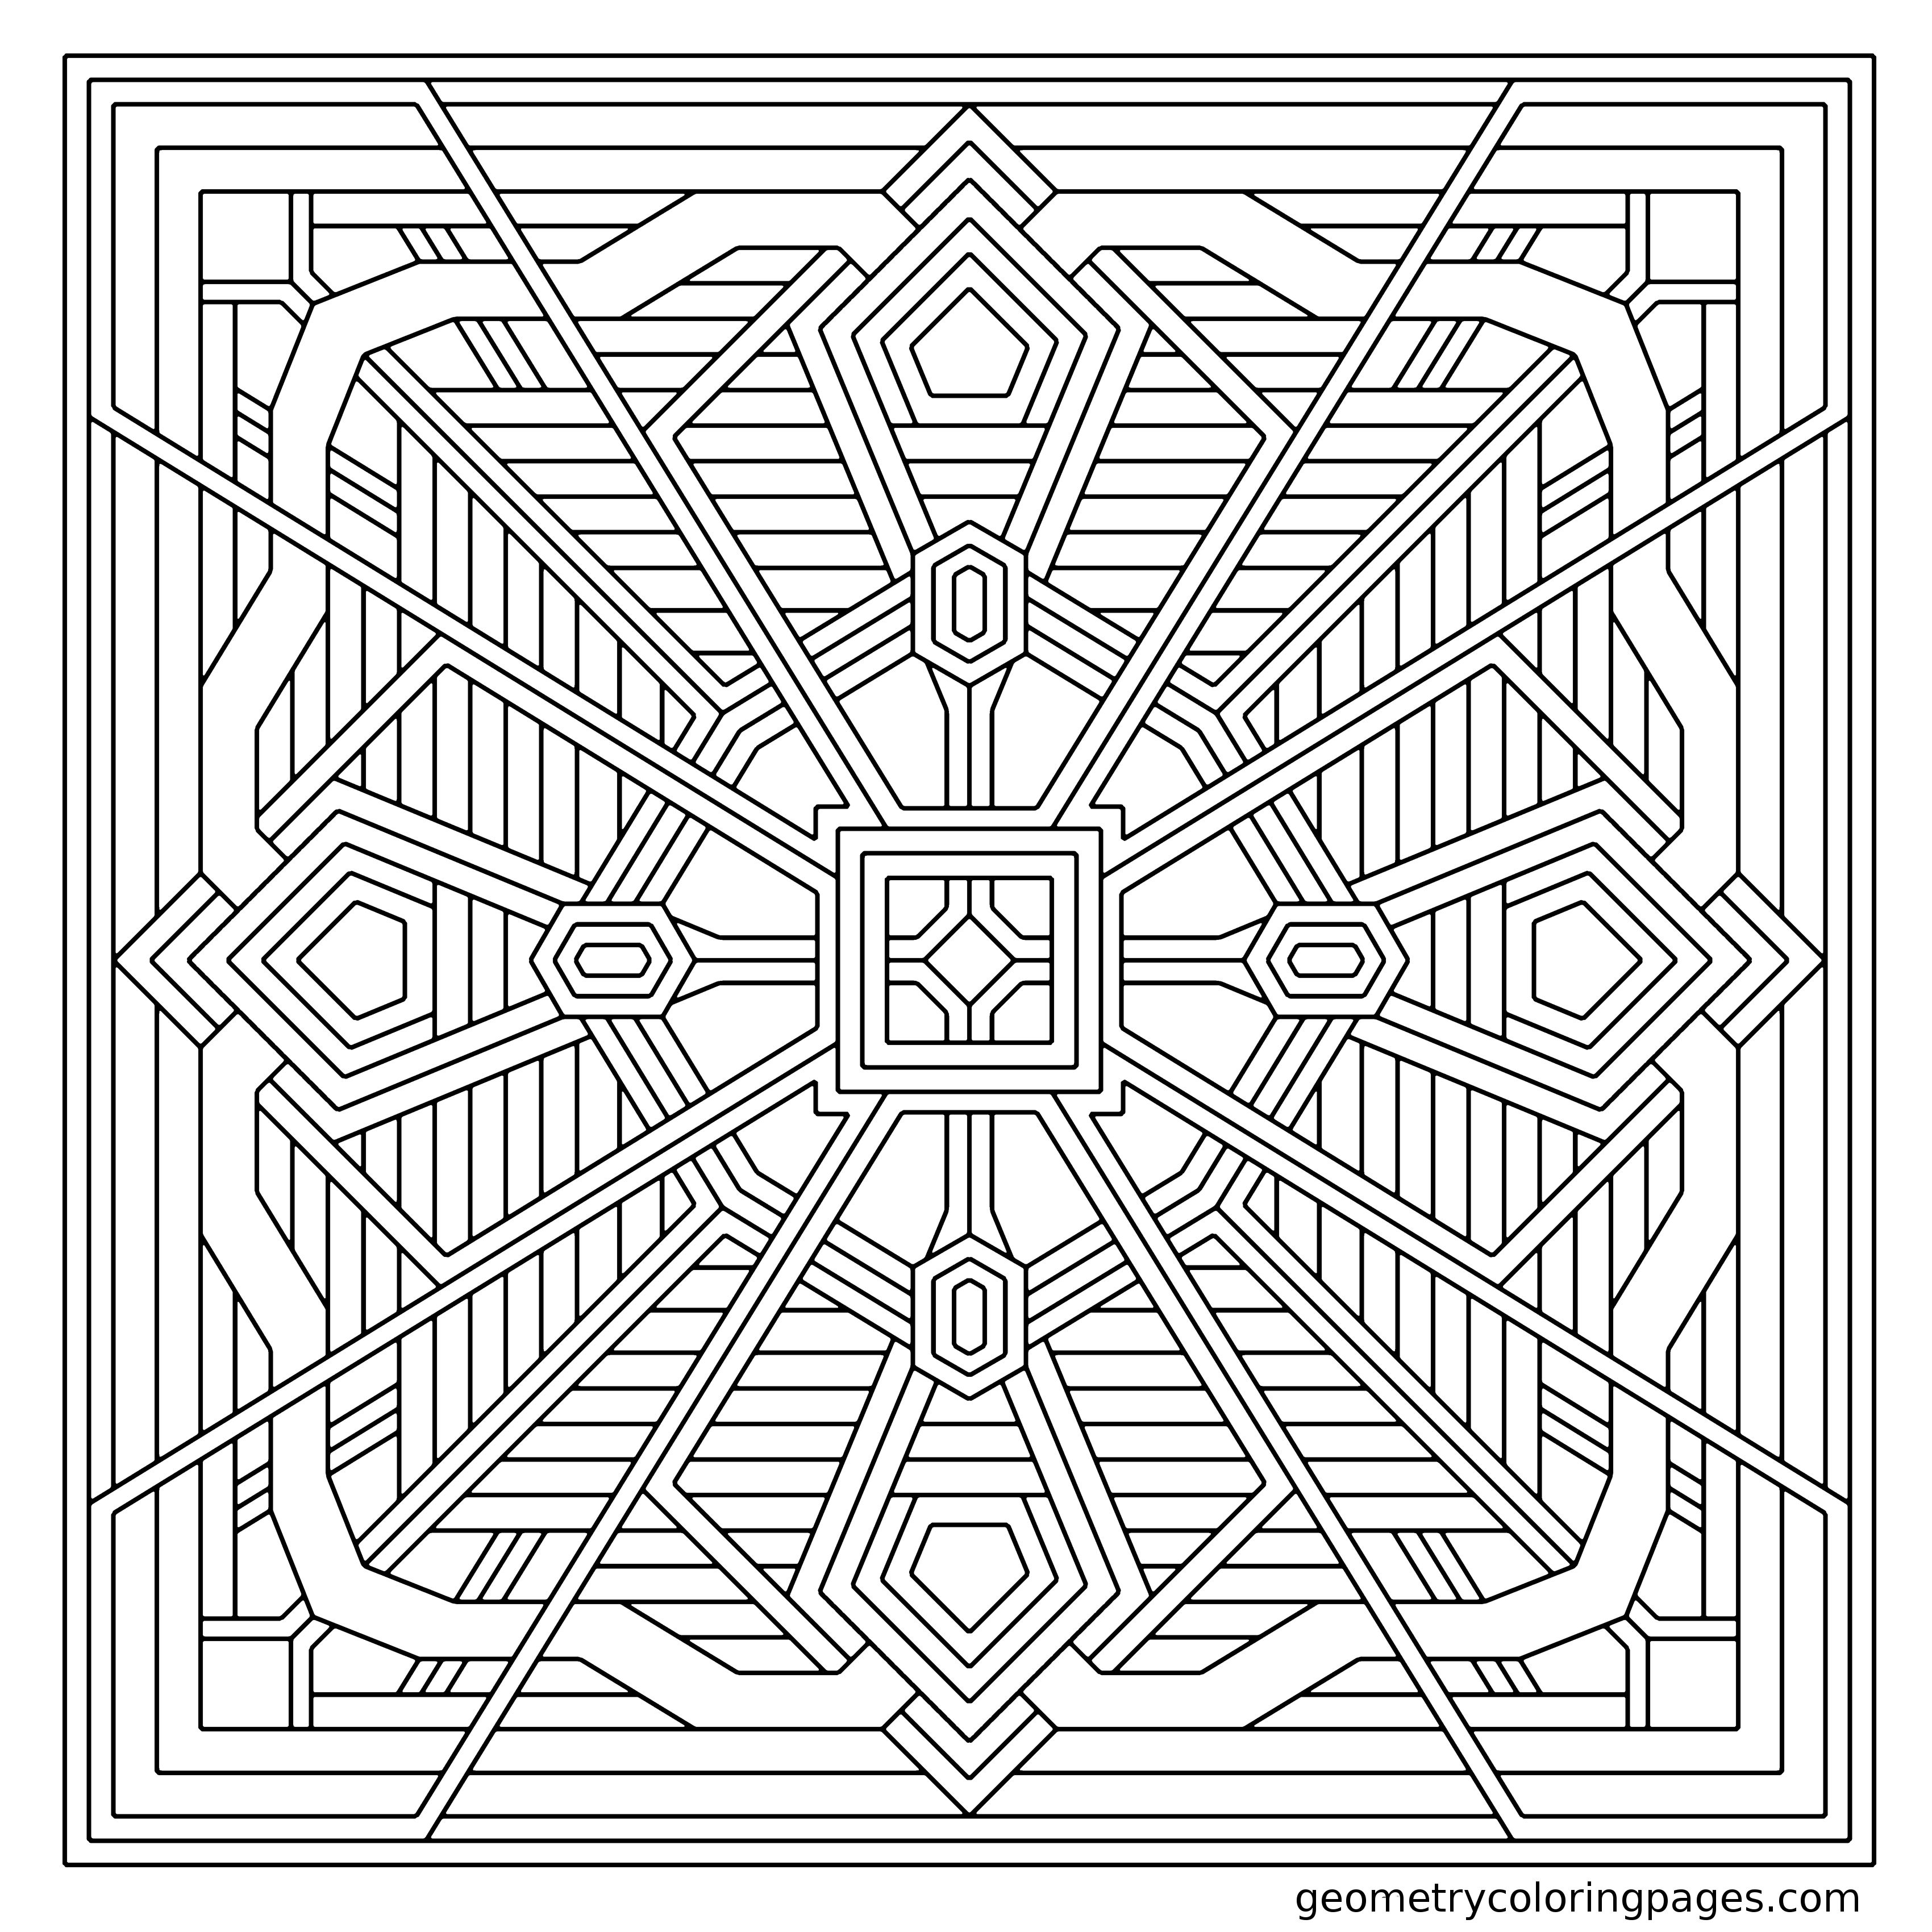 free geometric pattern coloring pages geometric pattern coloring pages for adults coloring home pattern coloring free pages geometric